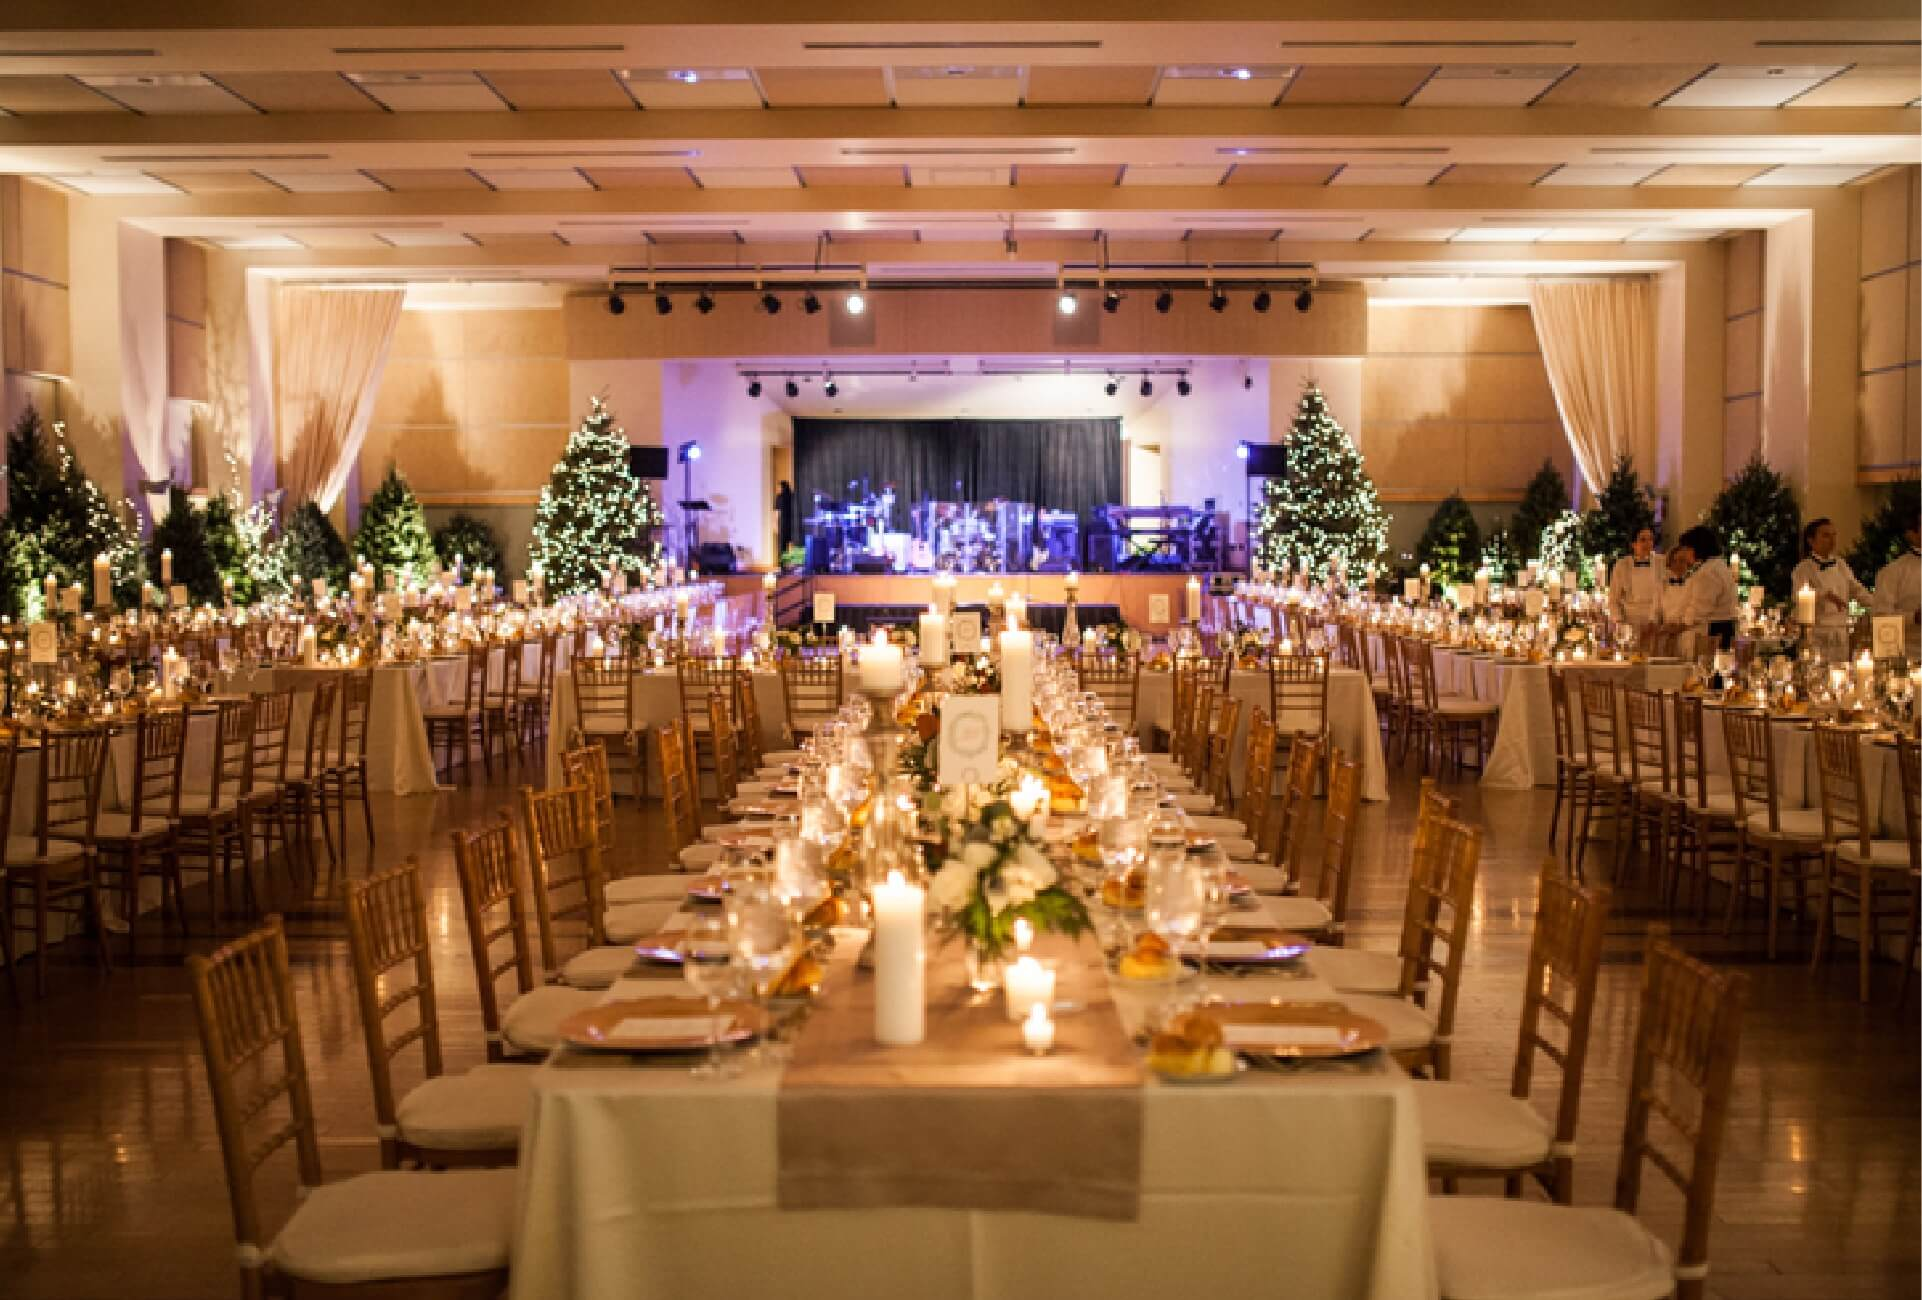 Customized weddings at The Circuit Center and Ballroom venue